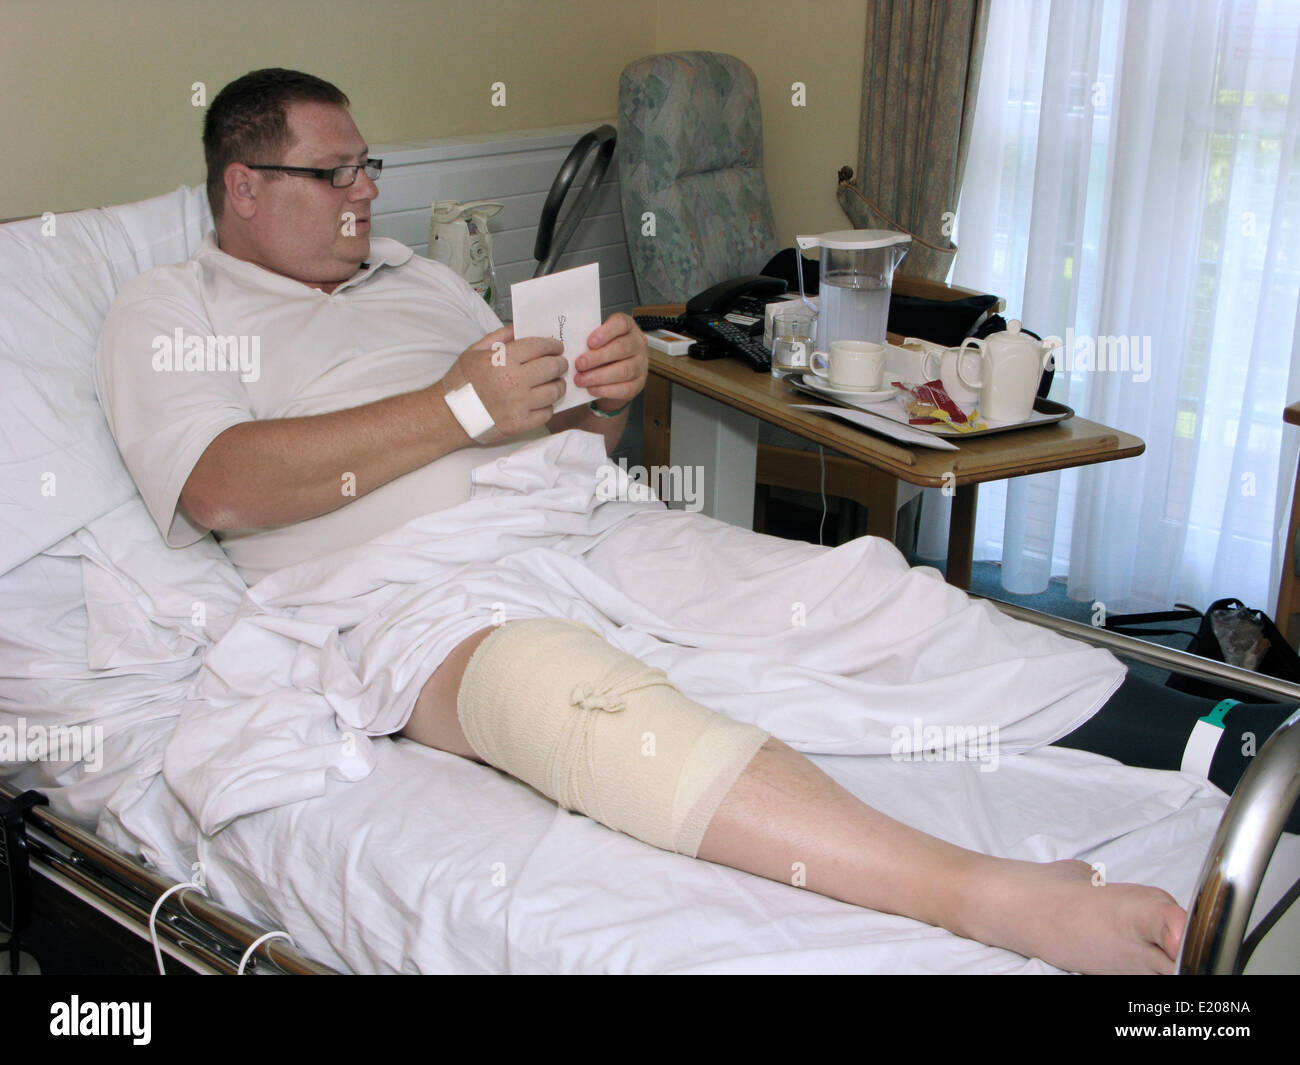 Man In Hospital With A Bandaged Knee U0026 Leg After A Knee ...